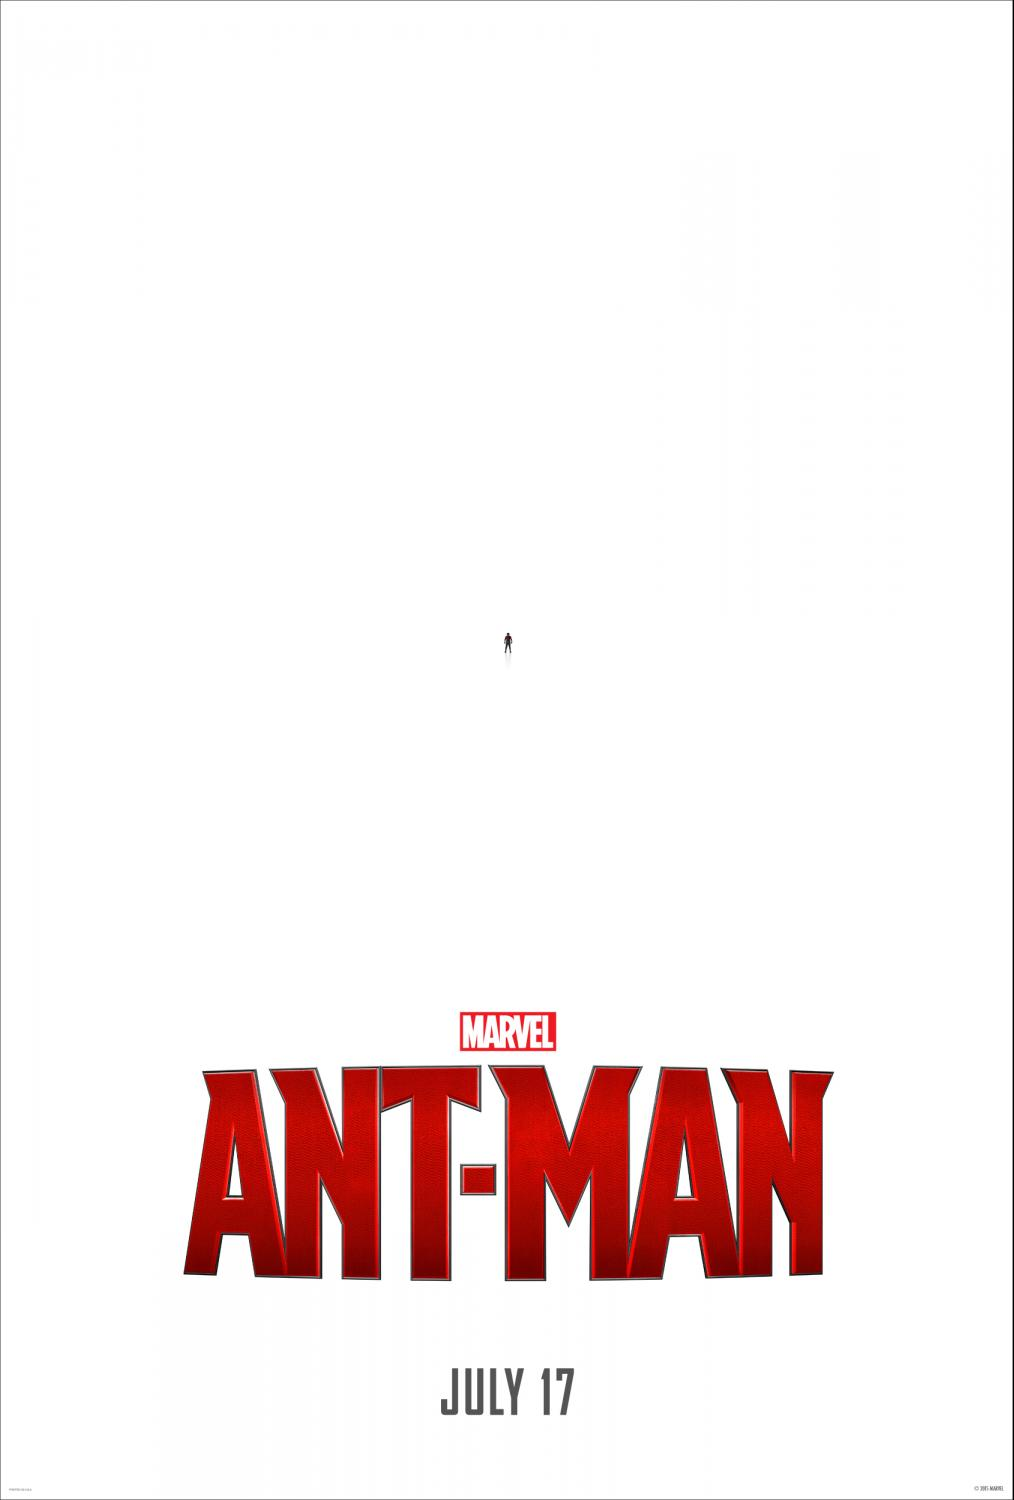 Ant-Man Teaser Trailer #AntMan